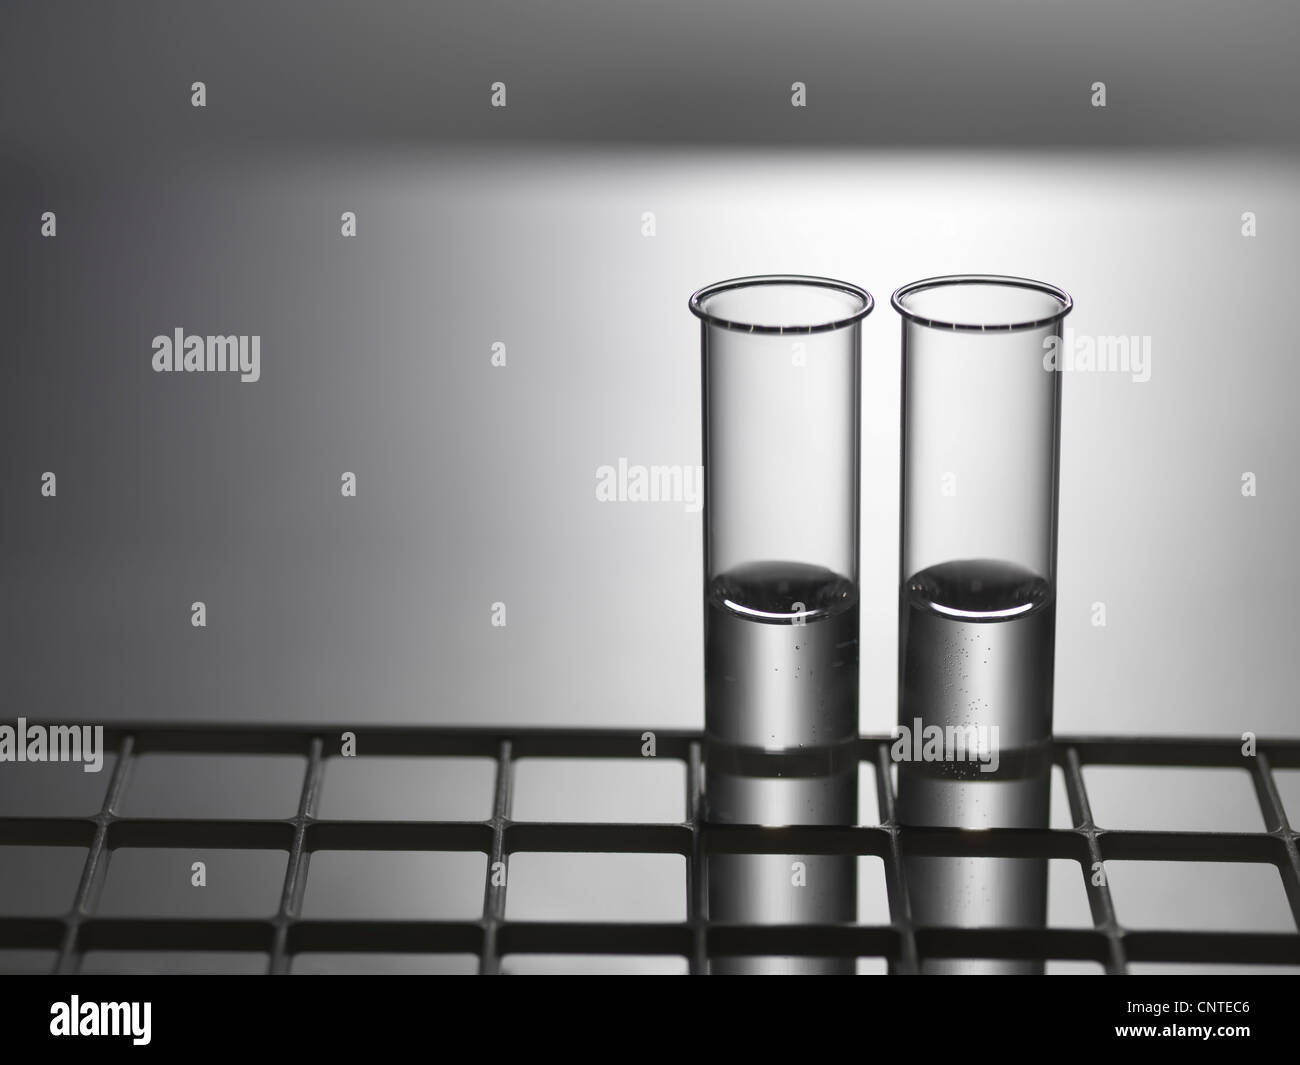 Close up of test tubes in rack - Stock Image